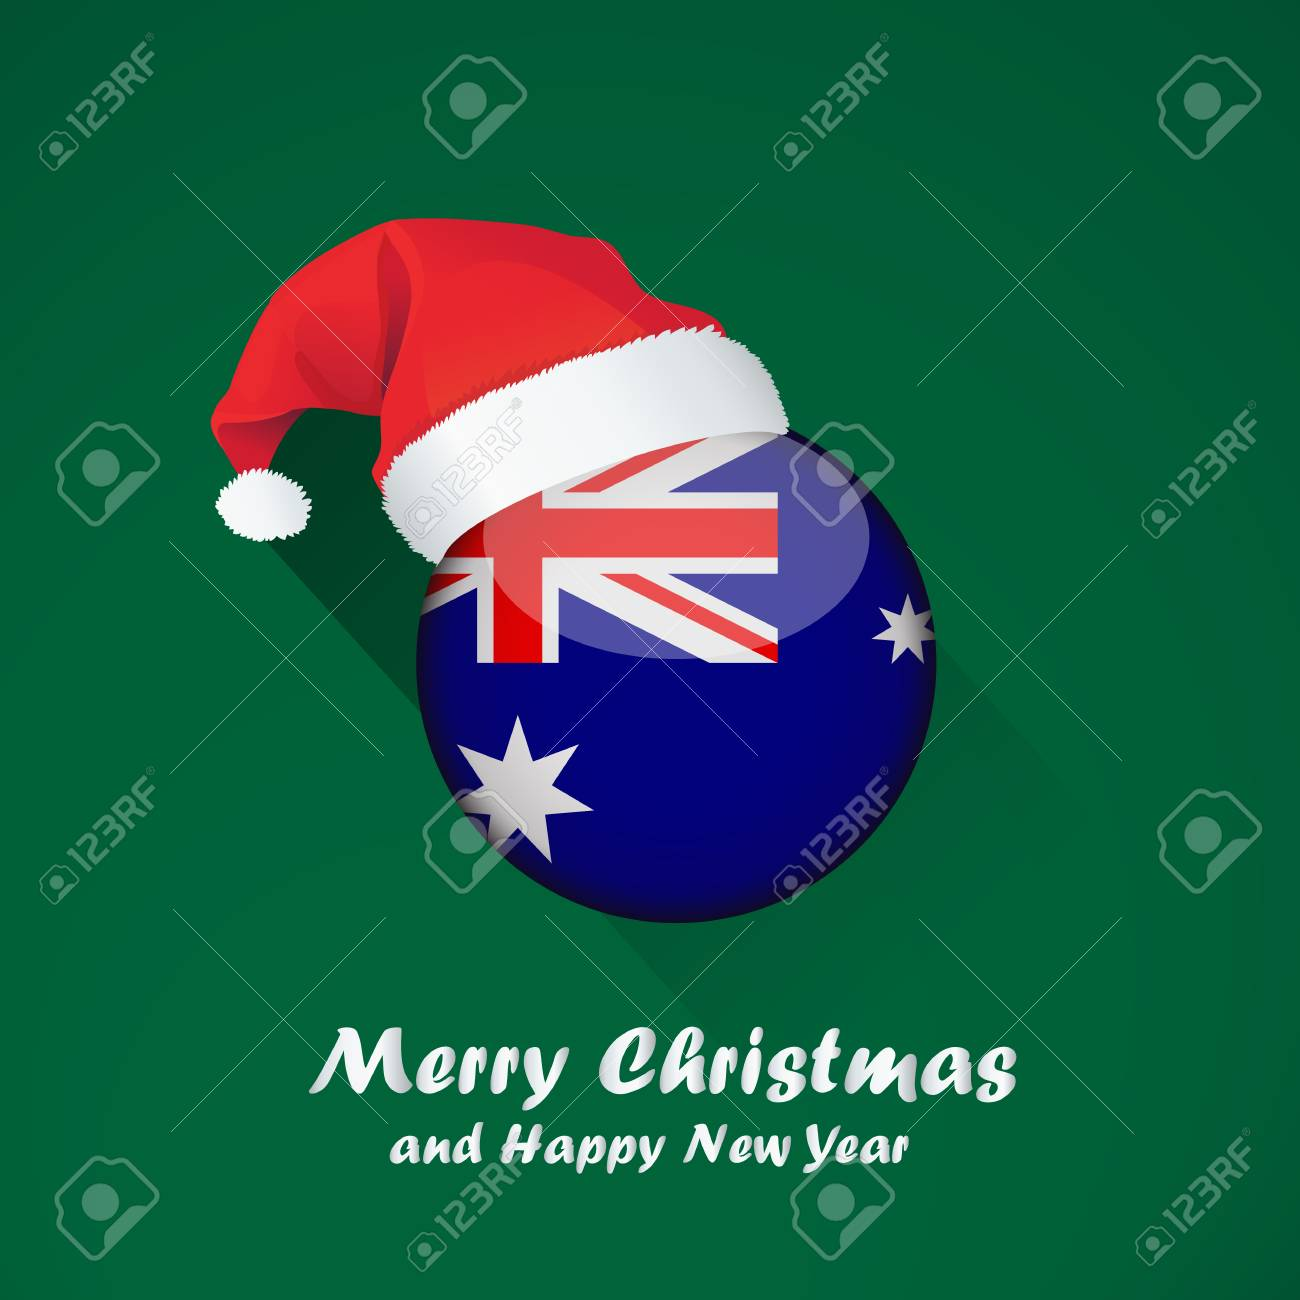 Christmas In Australia Background.Flag Of Australia Merry Christmas And Happy New Year Background